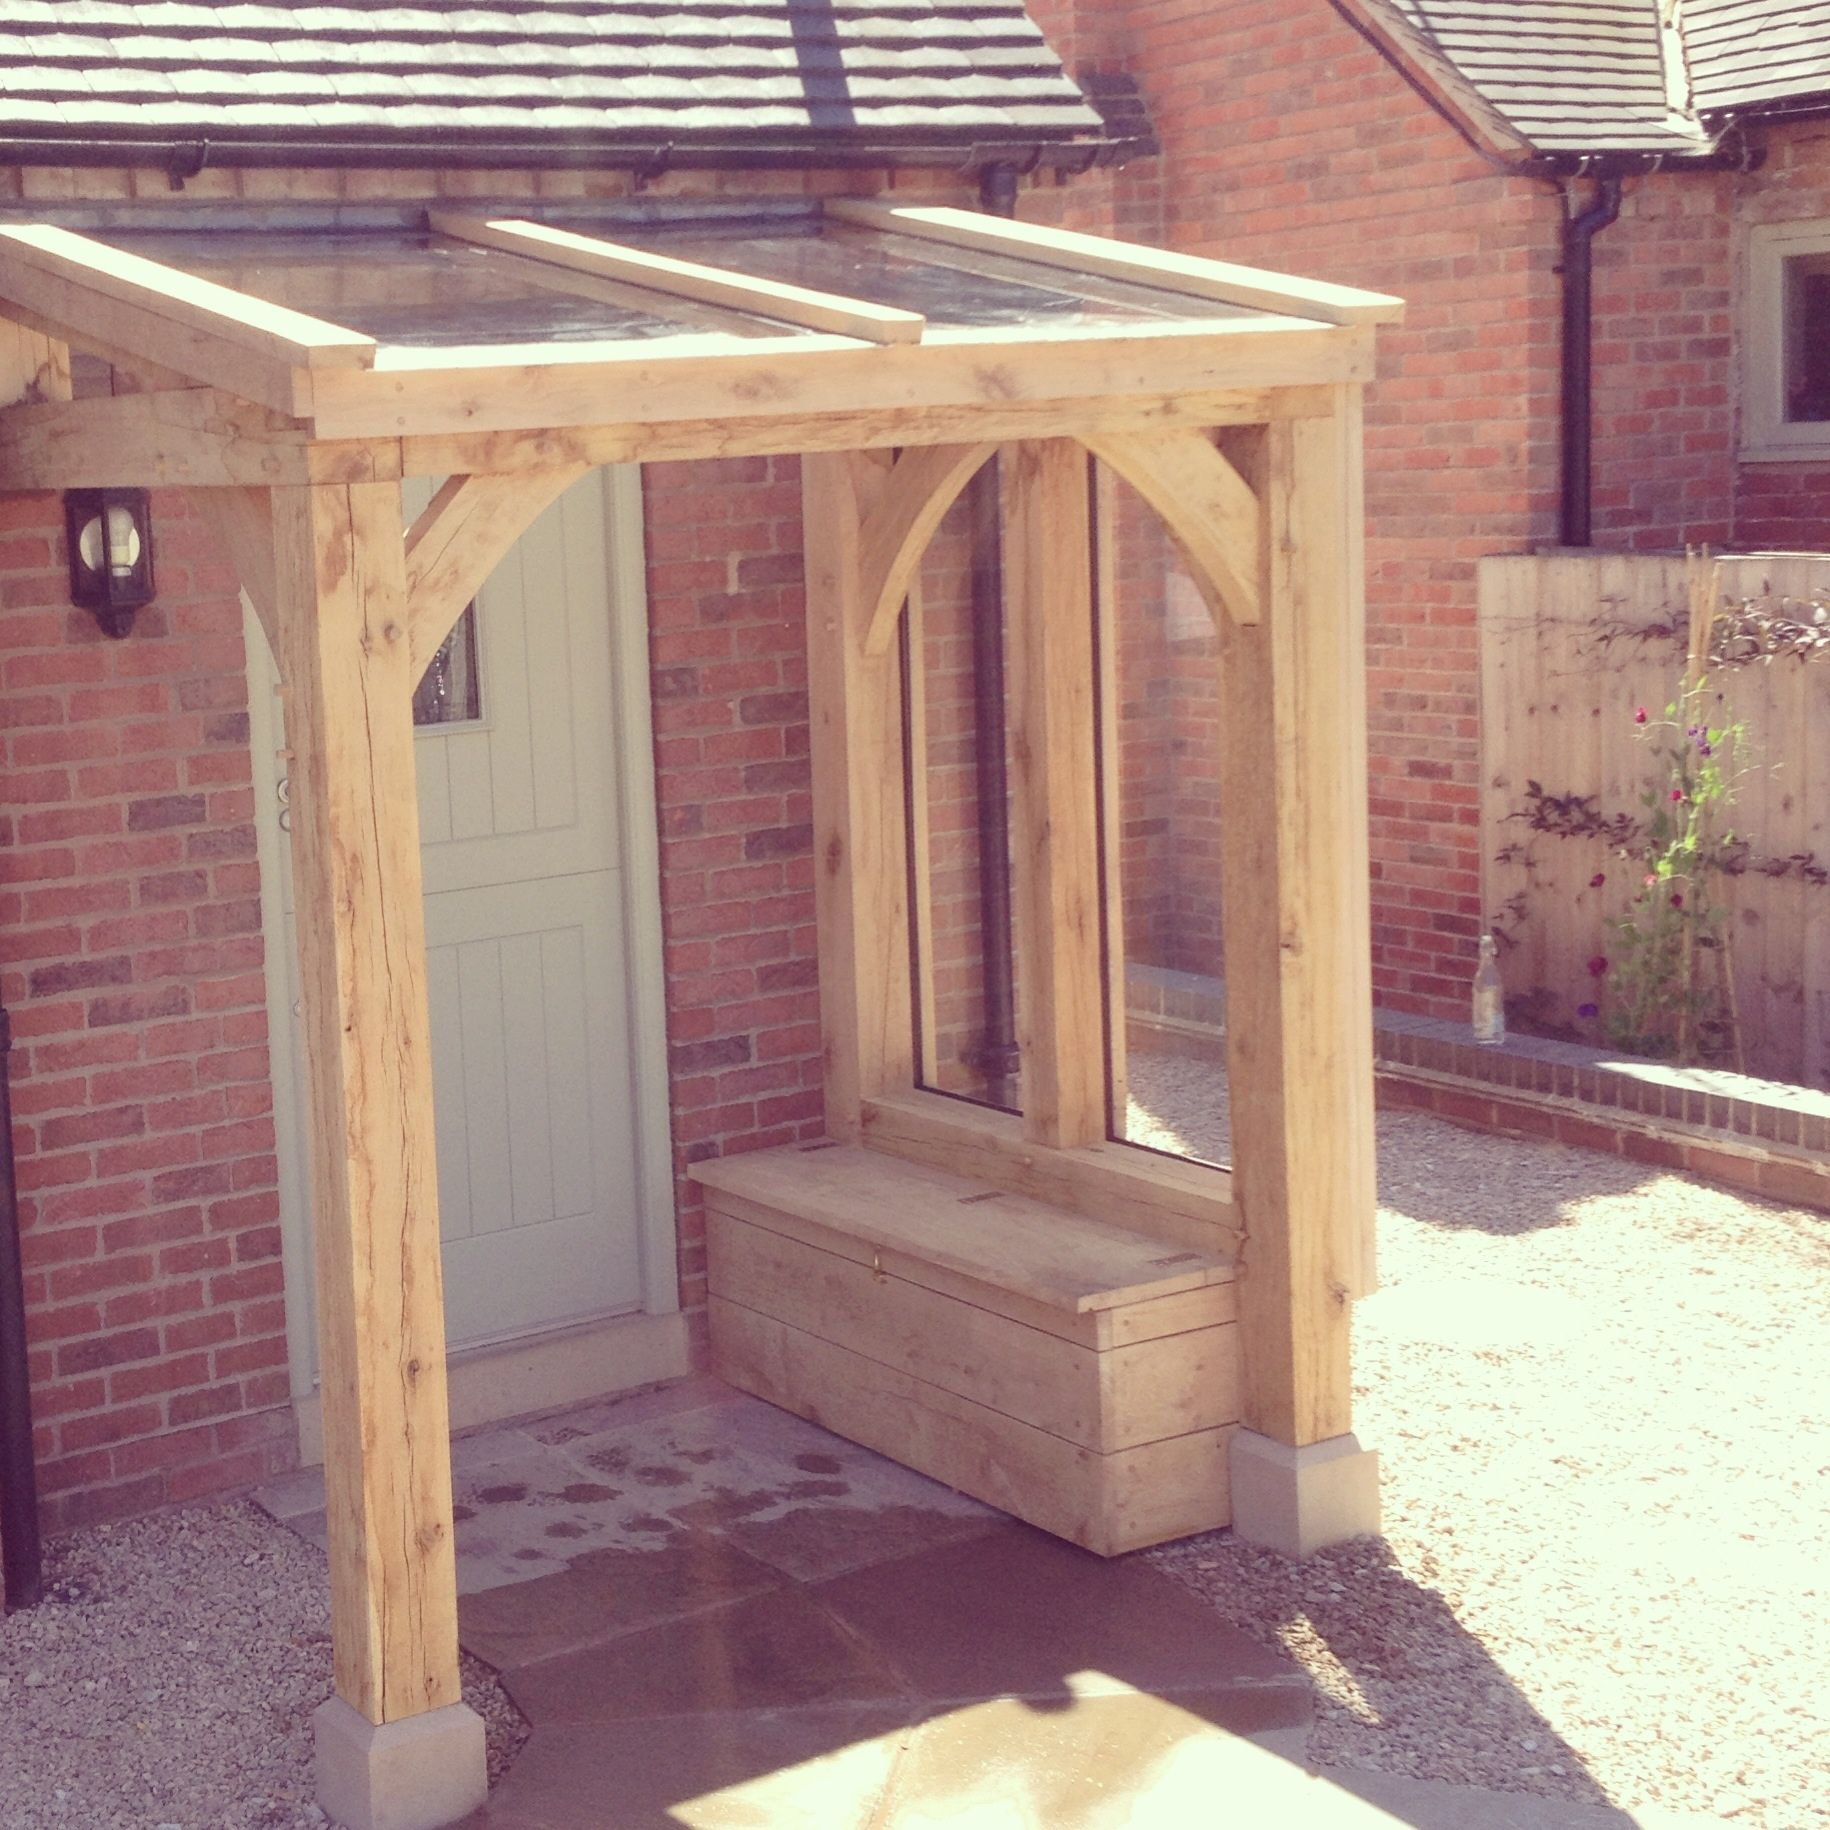 Get 28 image porch canopy kits princess solid oak stable door with porch canopy and from the anvil ring door knocker door canopies us united states page 1 ... & porch kit uk - Google Search | Front Porches u0026 Walkways ...